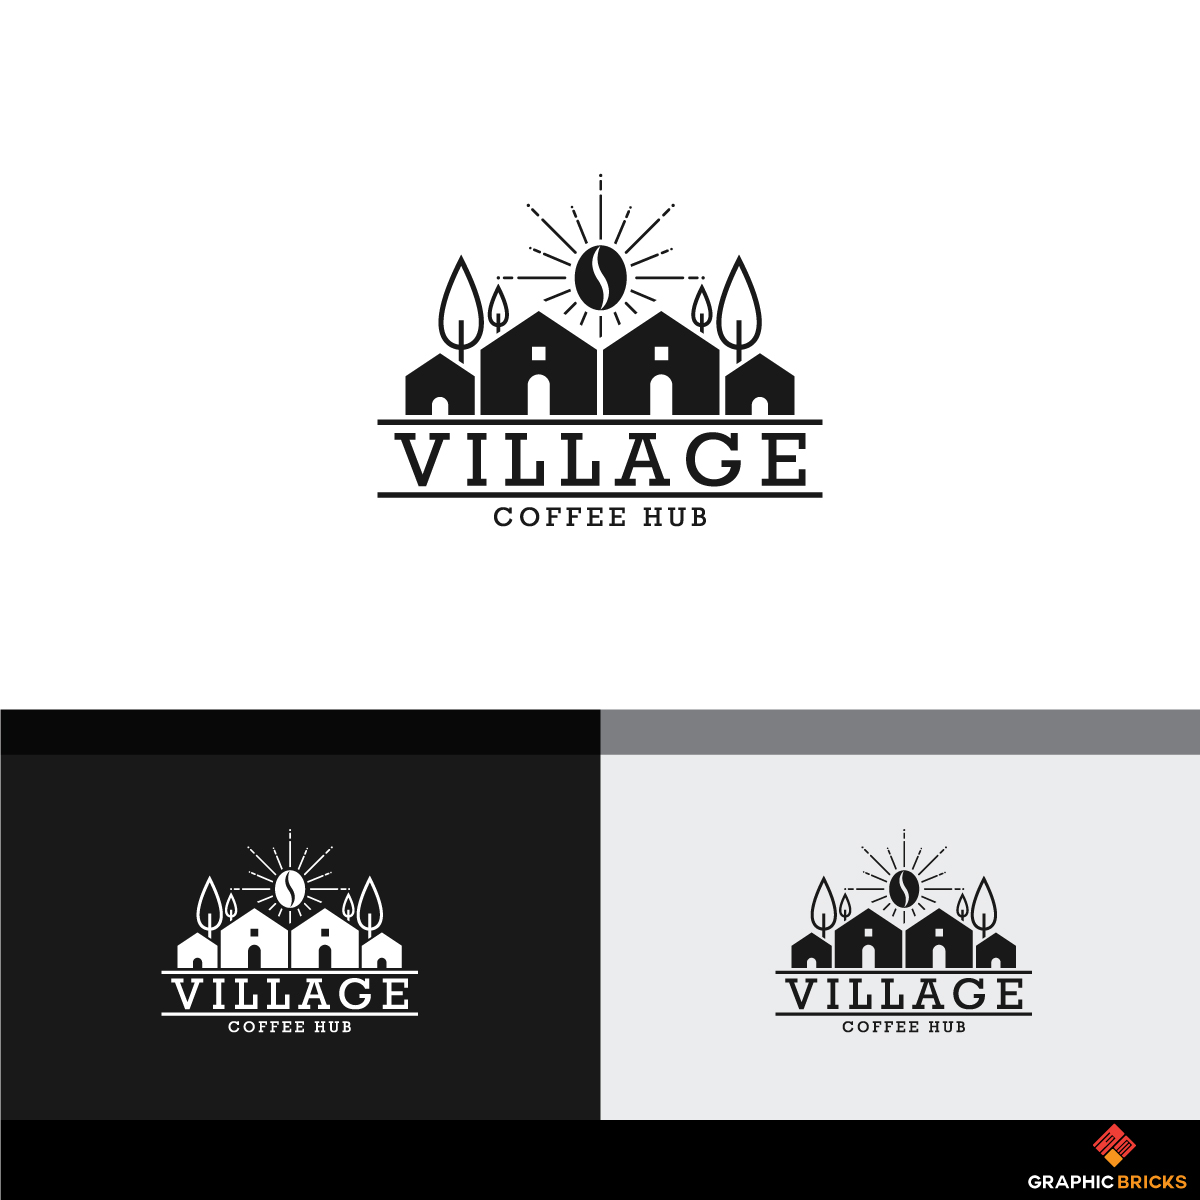 Elegant Modern Hospitality Logo Design For Village Coffee Hub In Australia 18905761